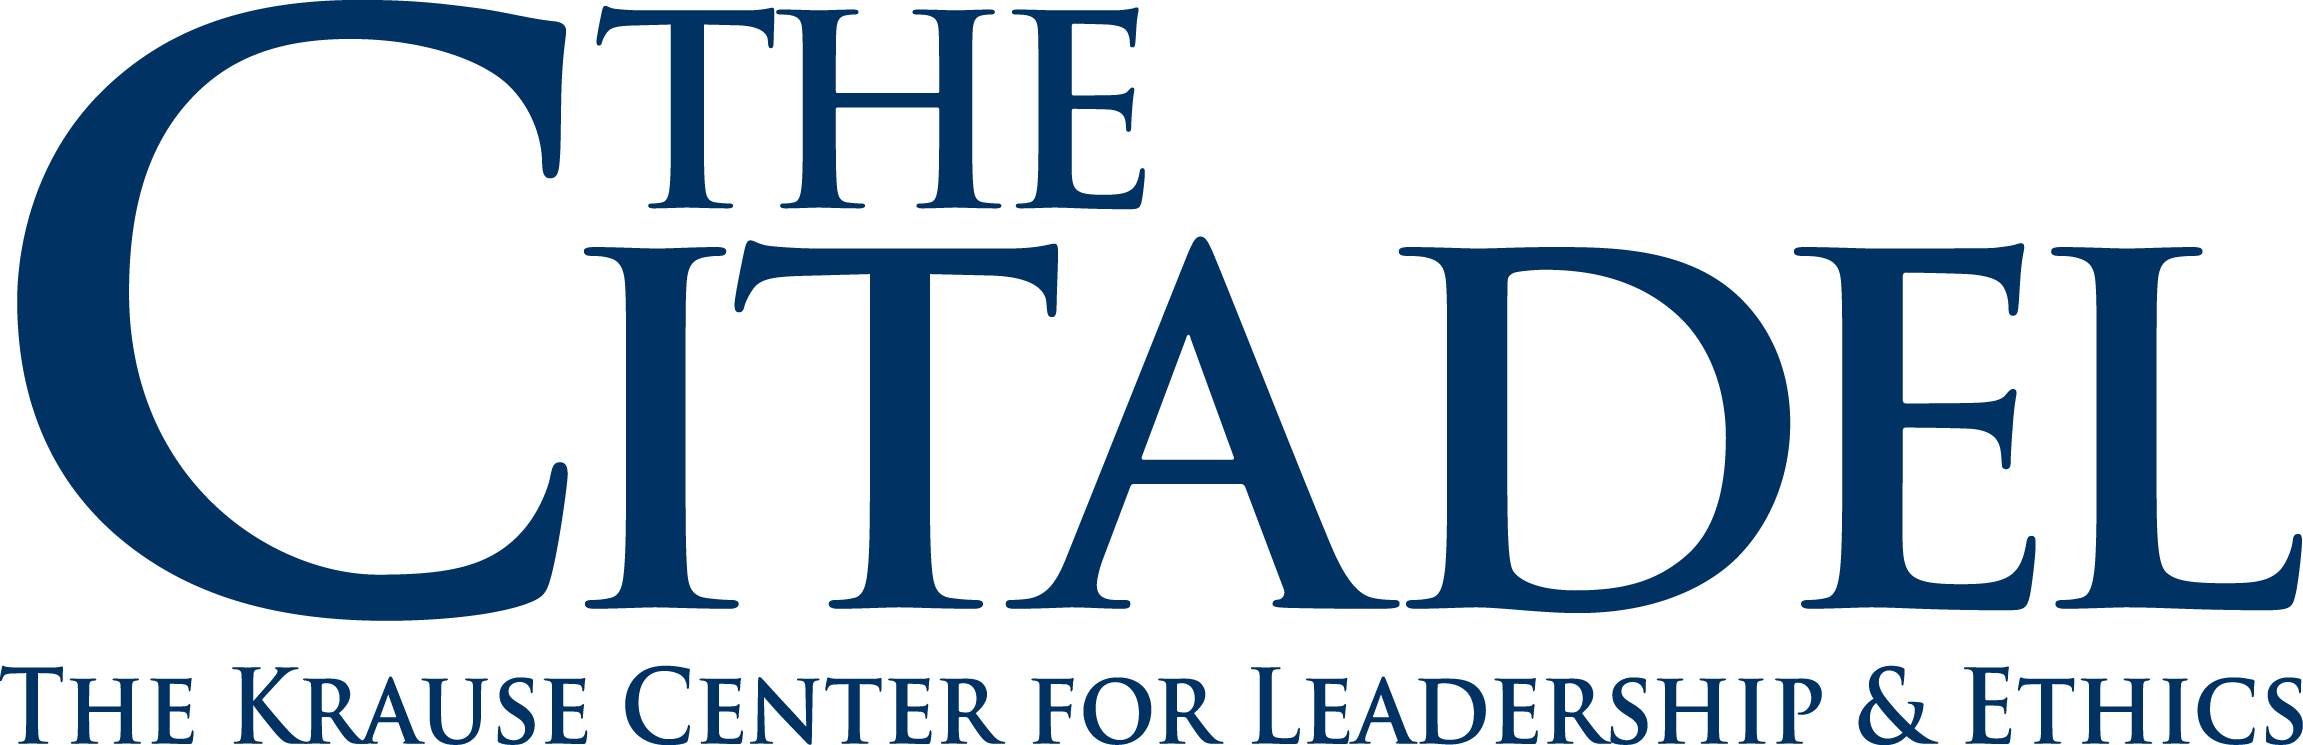 Krause Center for Leadership and Ethics logo